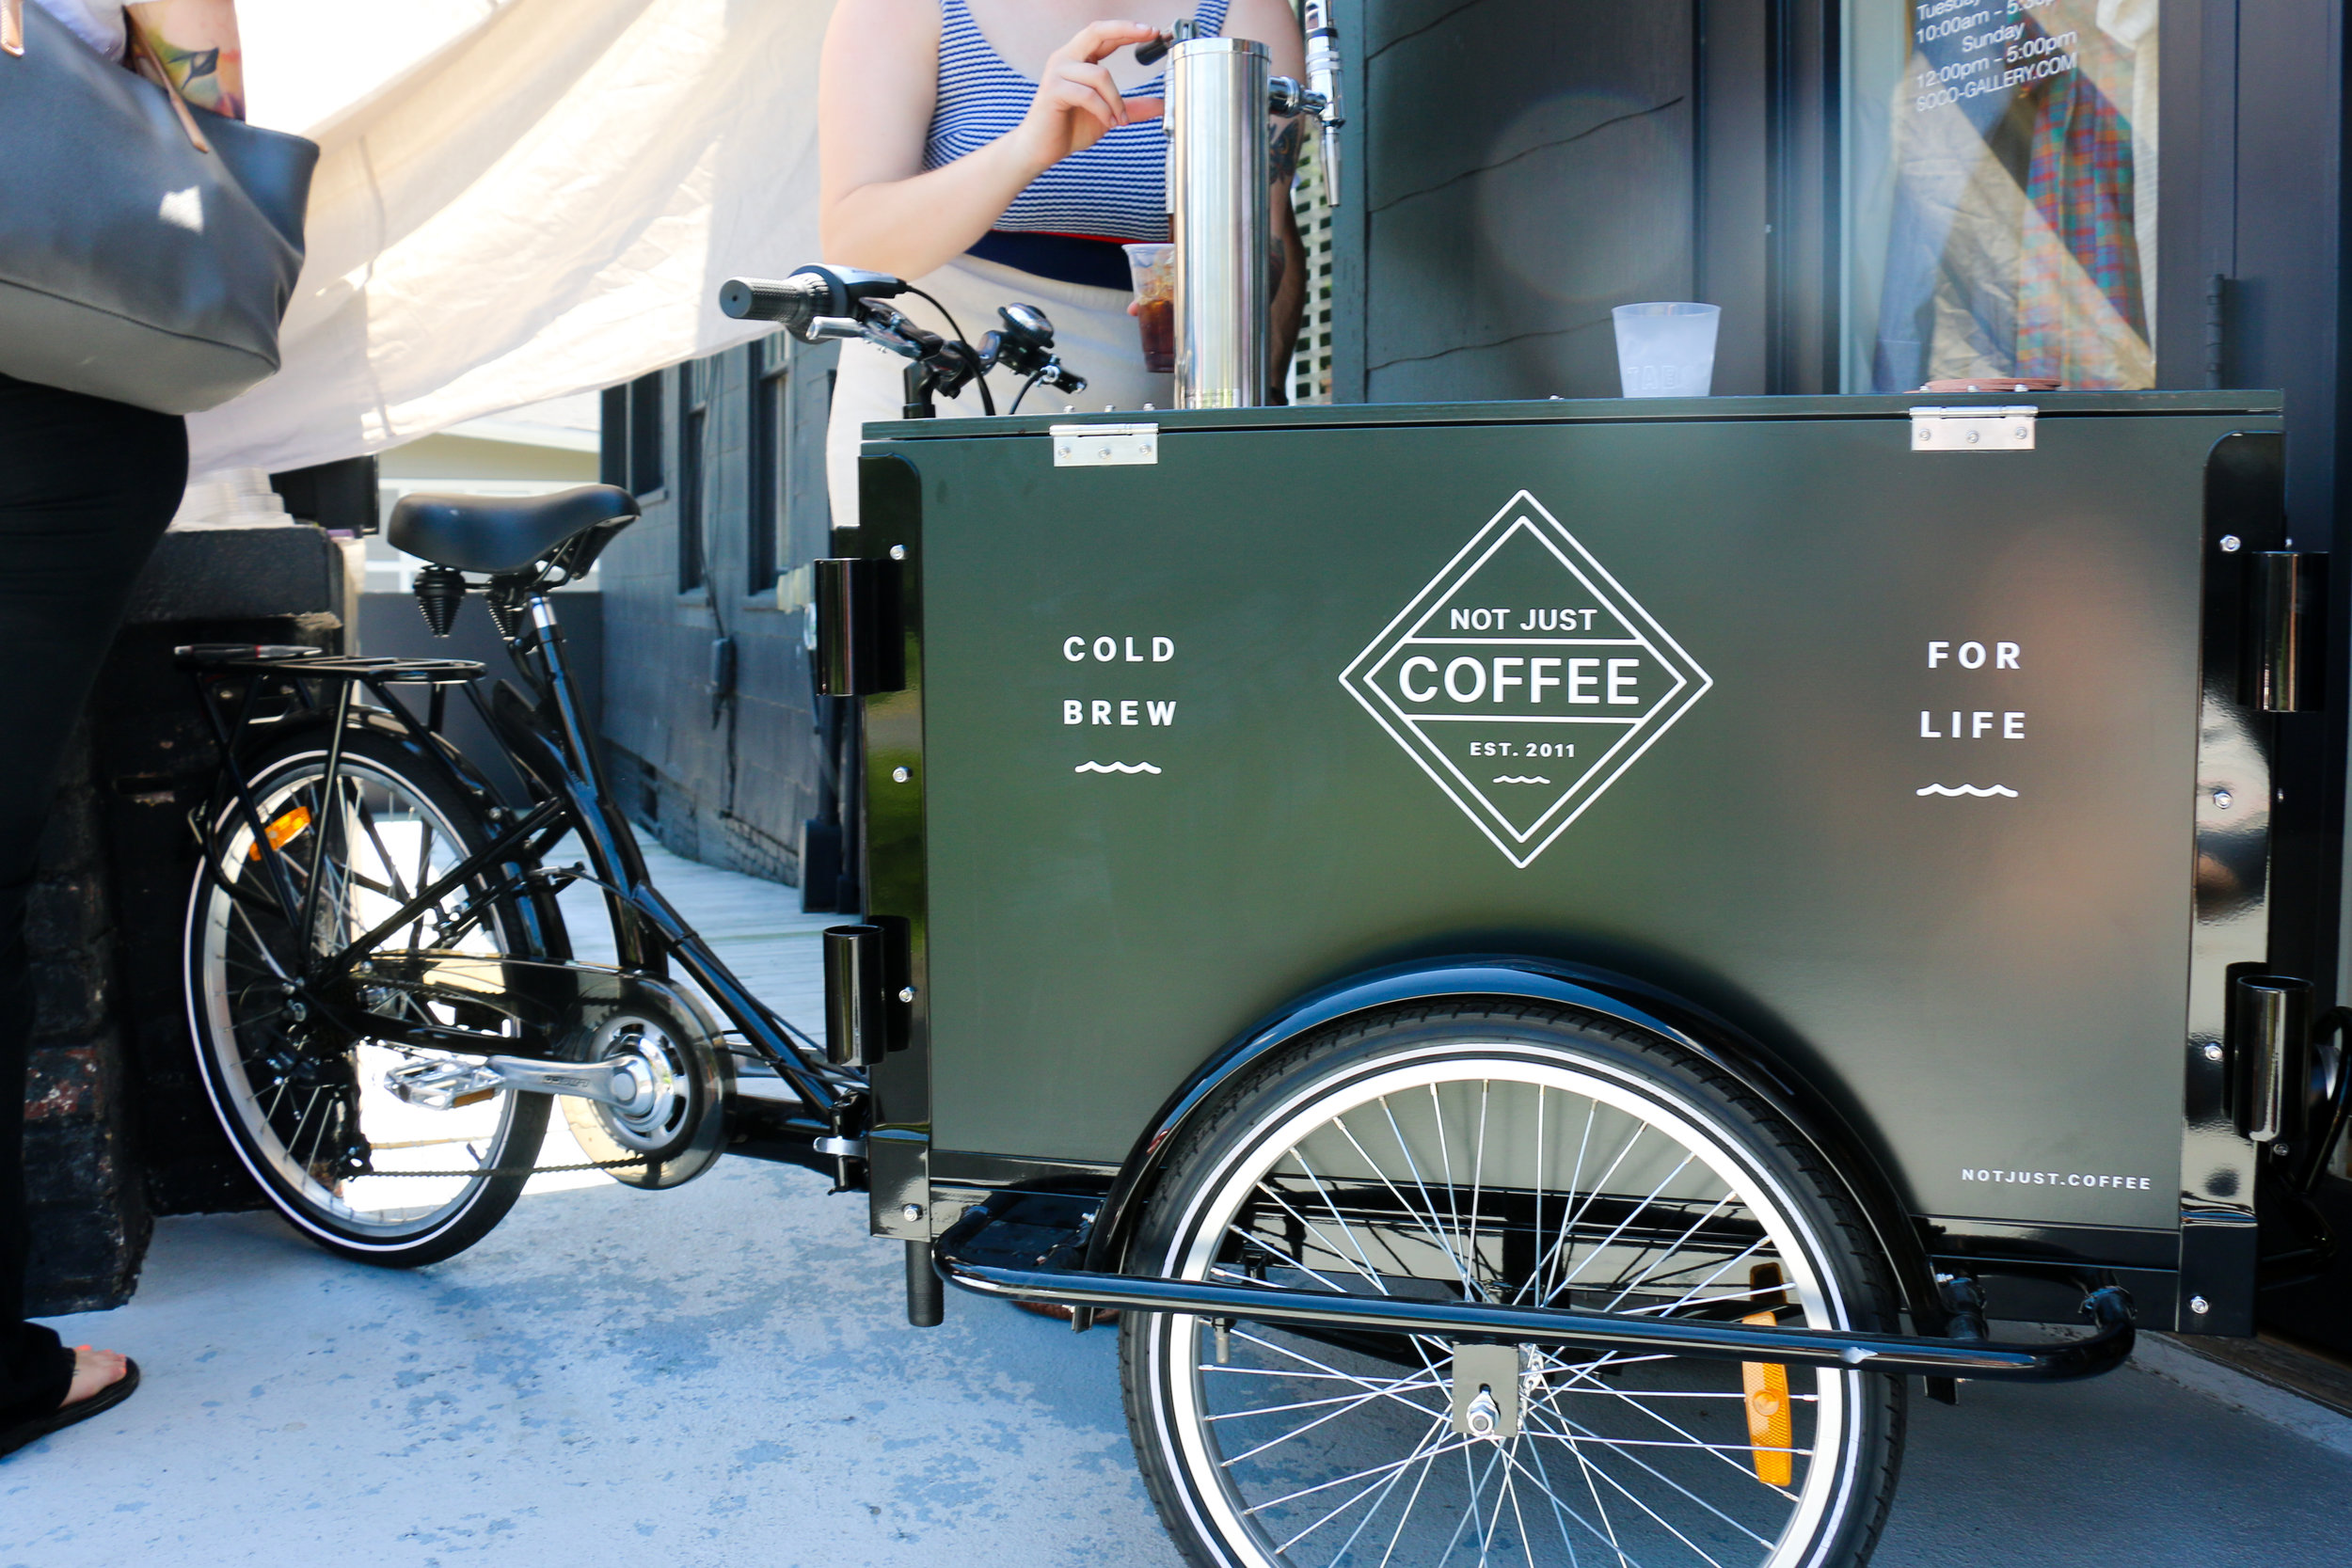 not-just-coffee-cold-brew-bike